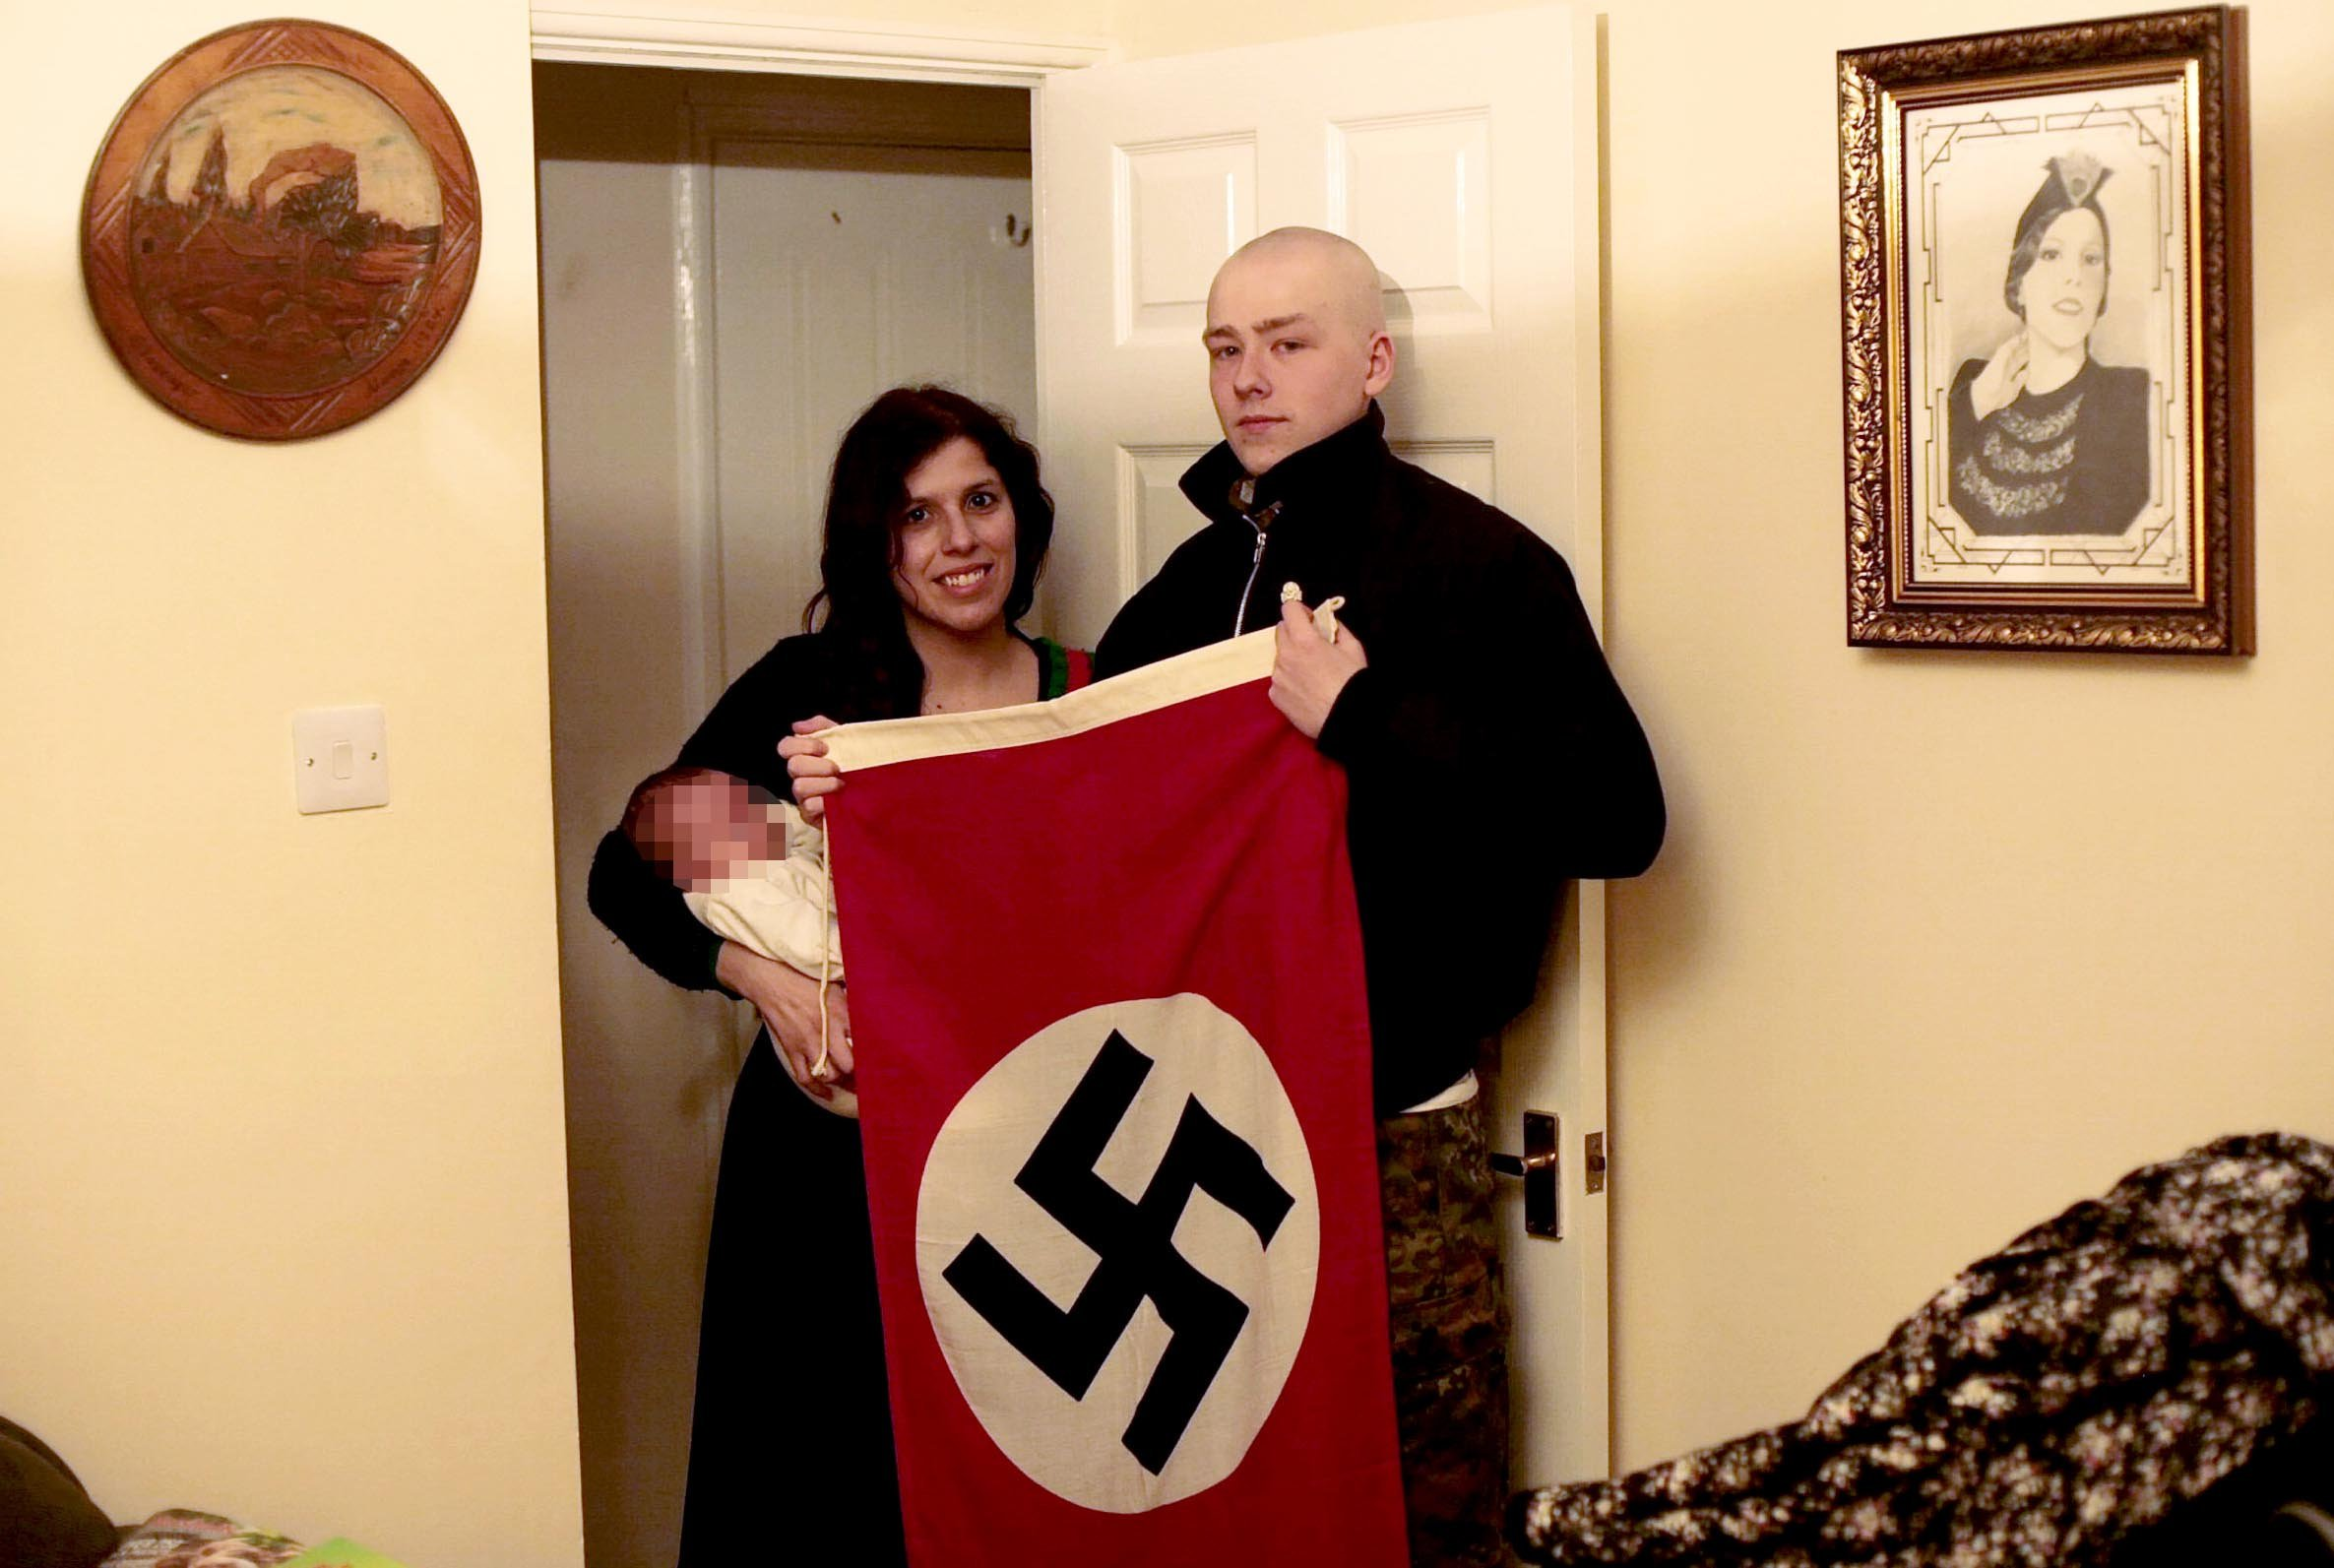 FILE PICTURE - Adam Thomas & Claudia Patatas holding a Swastika flag whilst holding their baby. See SWNS story SWMDnazi. A jury has retired to consider verdicts in the trial of three people accused of being members of a neo-Nazi terrorist group. Adam Thomas, 22, and his 38-year-old partner Claudia Patatas ? who jurors heard named their baby Adolf out of ?admiration? for Hitler ? are accused of membership of the banned group National Action. Warehouse worker Daniel Bogunovic, 27, of Crown Hills Rise, Leicester, is also on trial at Birmingham Crown Court accused of the same charge. During the trial, jurors saw a photograph of former Amazon security guard Thomas in the hooded white robes of the Ku Klux Klan, holding his newborn son. Another image from what prosecutors called the ?Thomas-Patatas family album? showed the smiling couple at home in Waltham Gardens, Banbury, Oxfordshire, with a swastika flag and Patatas holding the baby. The couple allegedly had a poster stuck to their fridge reading ?Britain is ours ? the rest must go?, and a pastry-cutter shaped like a swastika, kept in a kitchen cupboard.